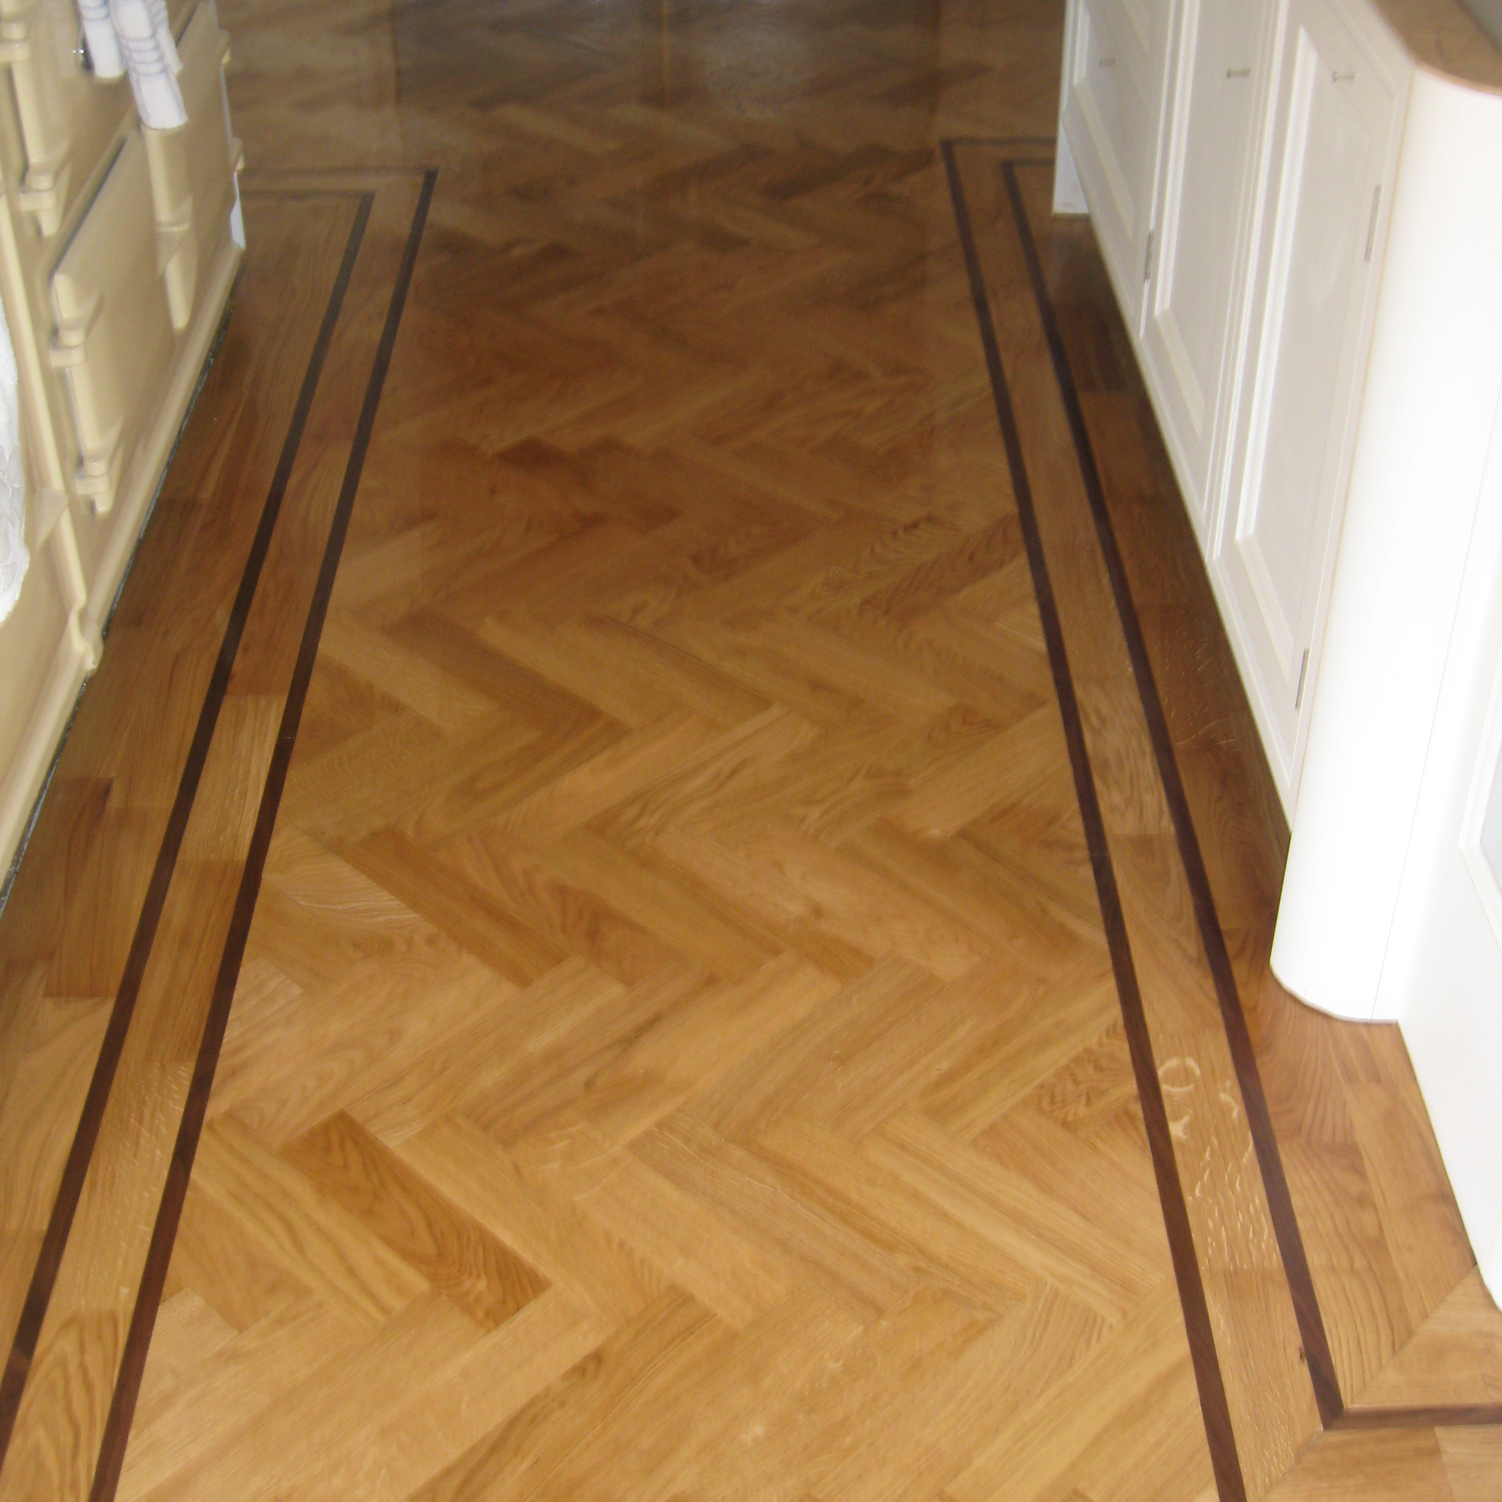 Solid wood flooring flooring elegance for Real wood flooring